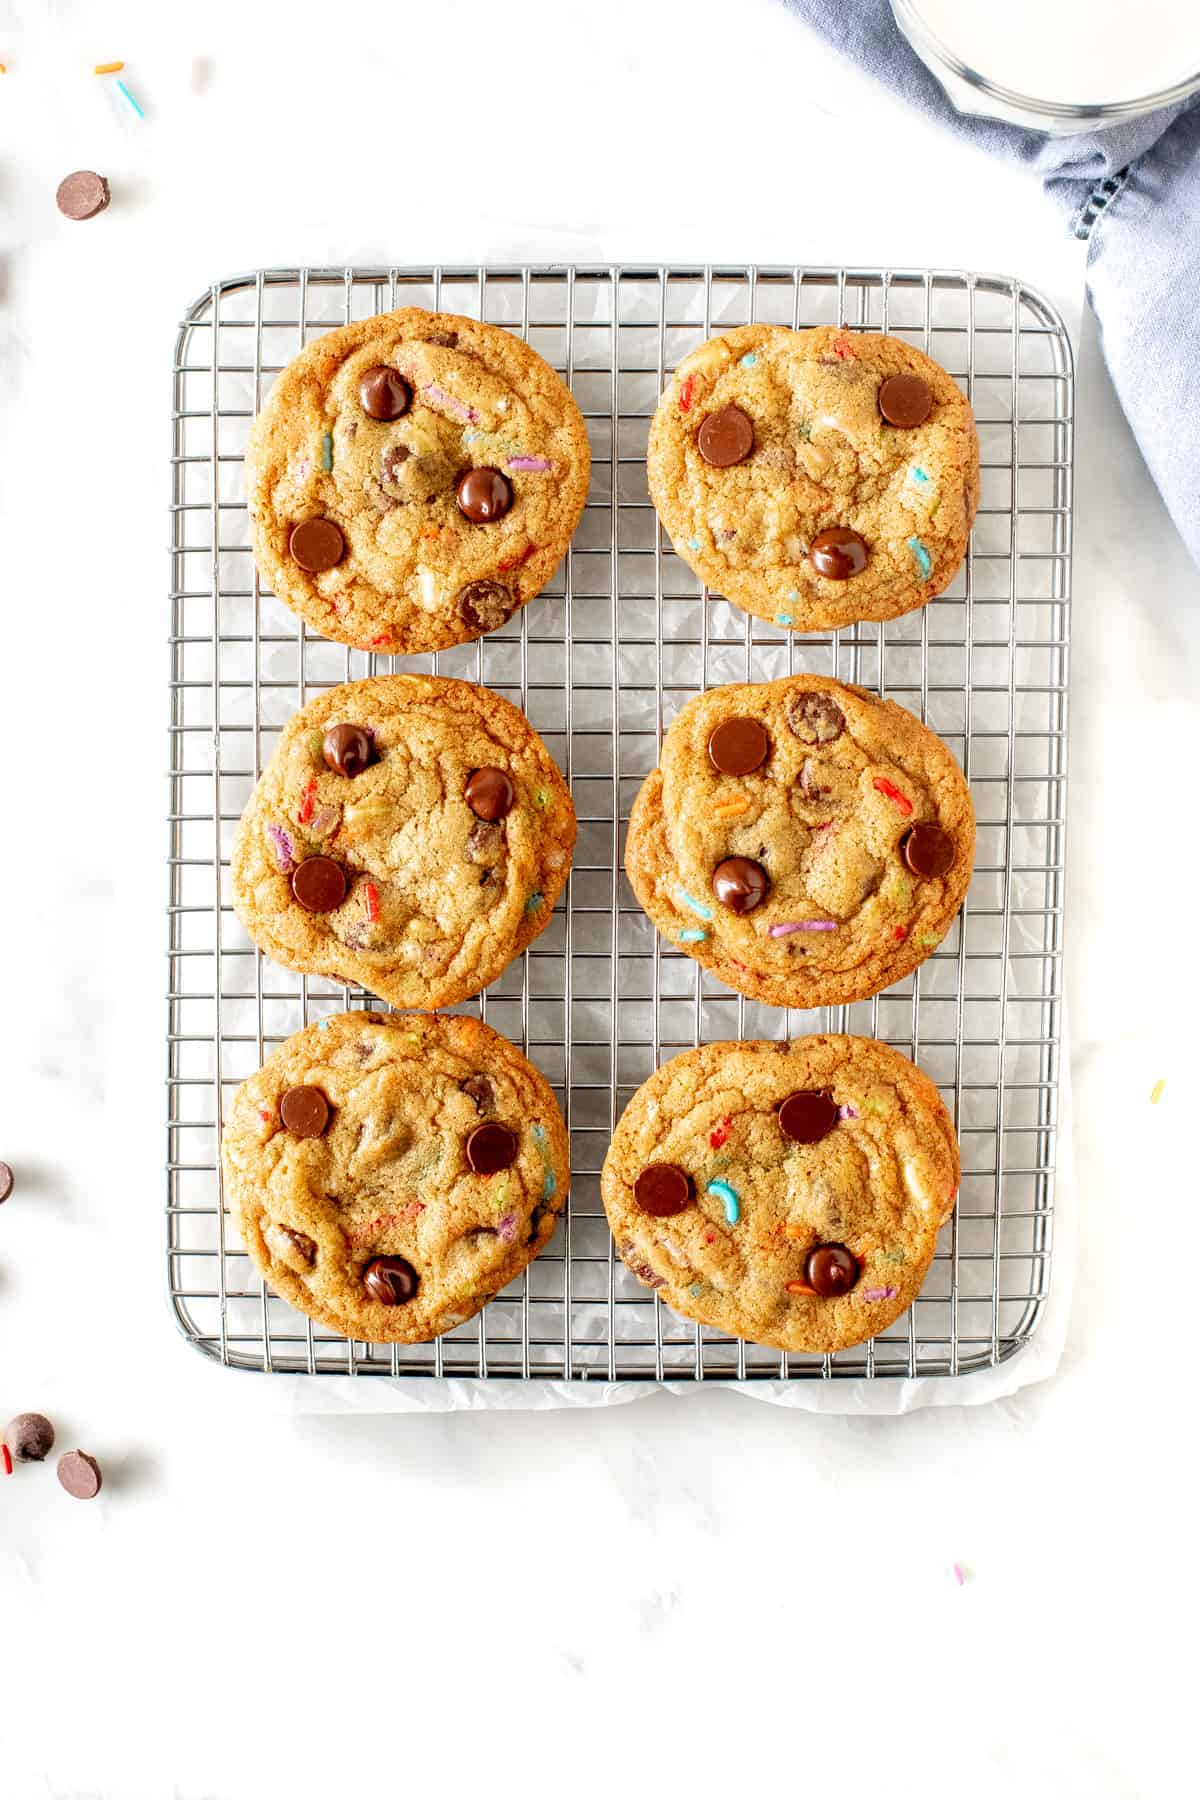 Cooling rack with 6 sprinkle chocolate chip cookies